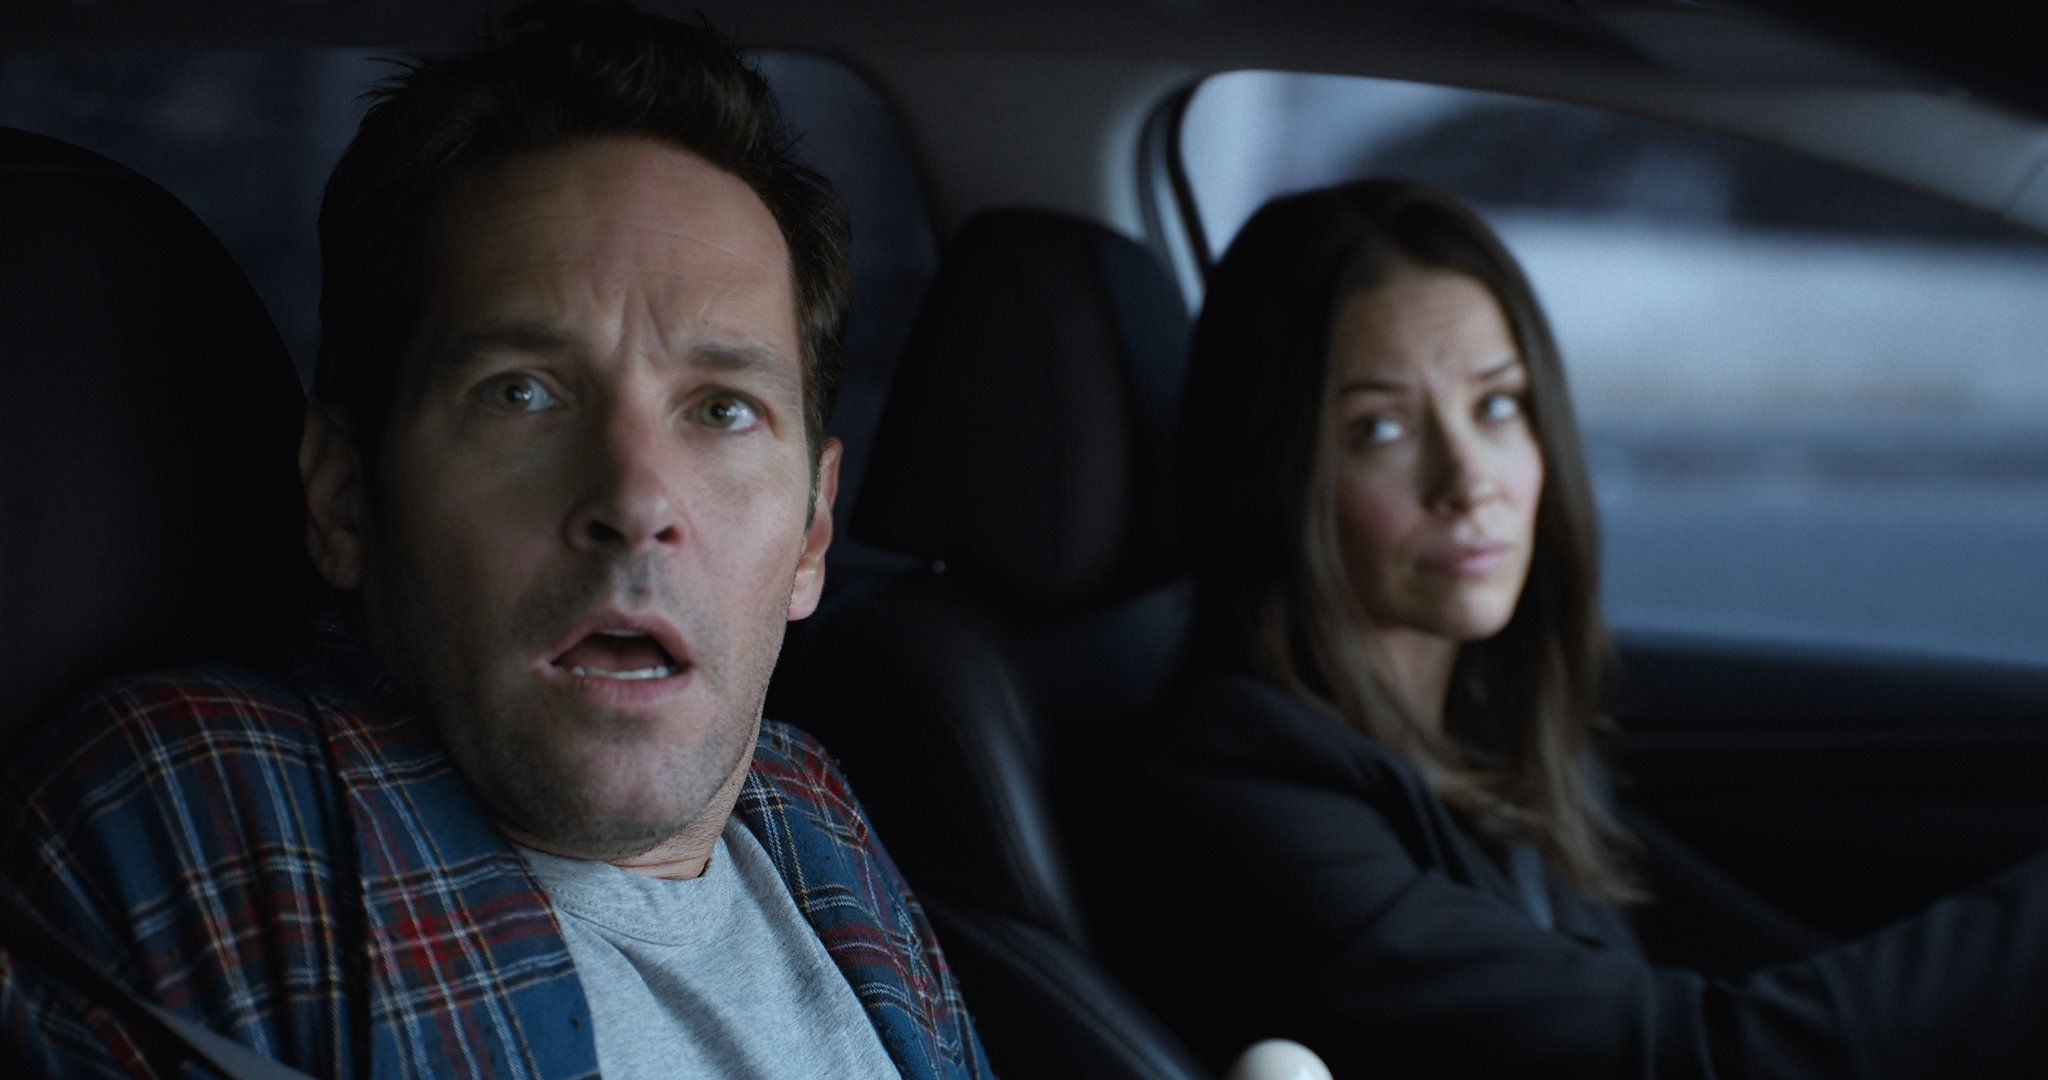 There's A Hidden Joke In The 'Ant-Man And The Wasp' Trailer